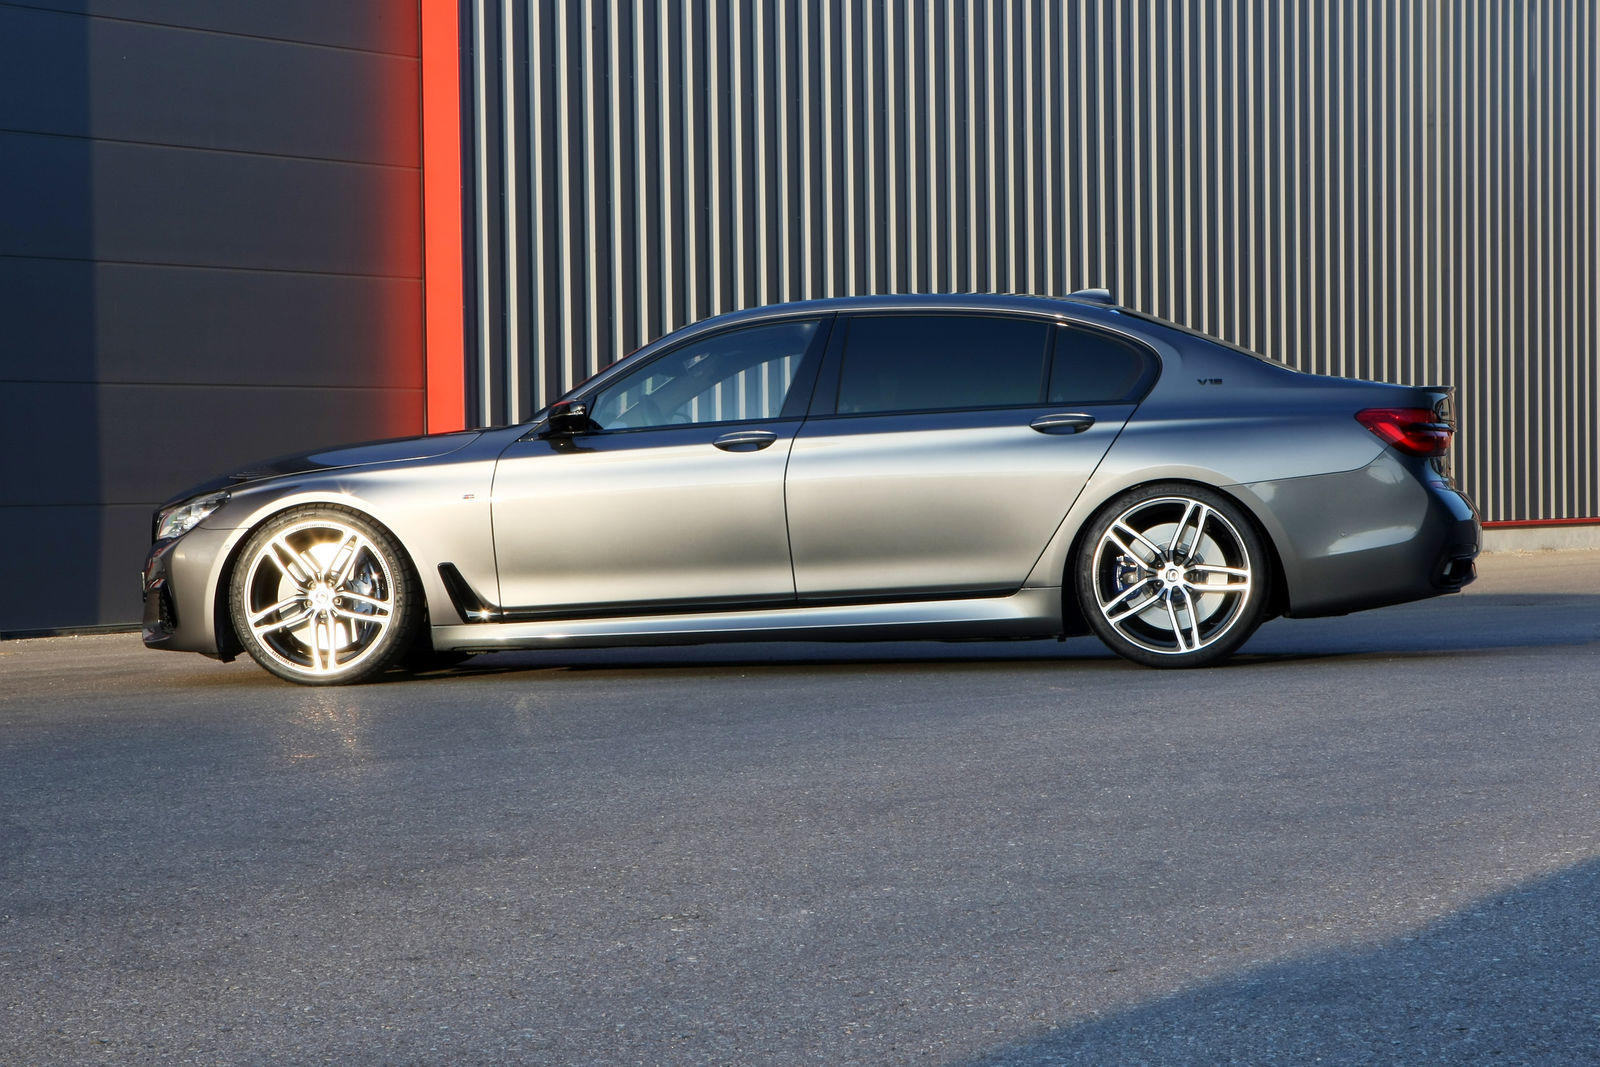 BMW M760Li de la G-Power - BMW M760Li de la G-Power